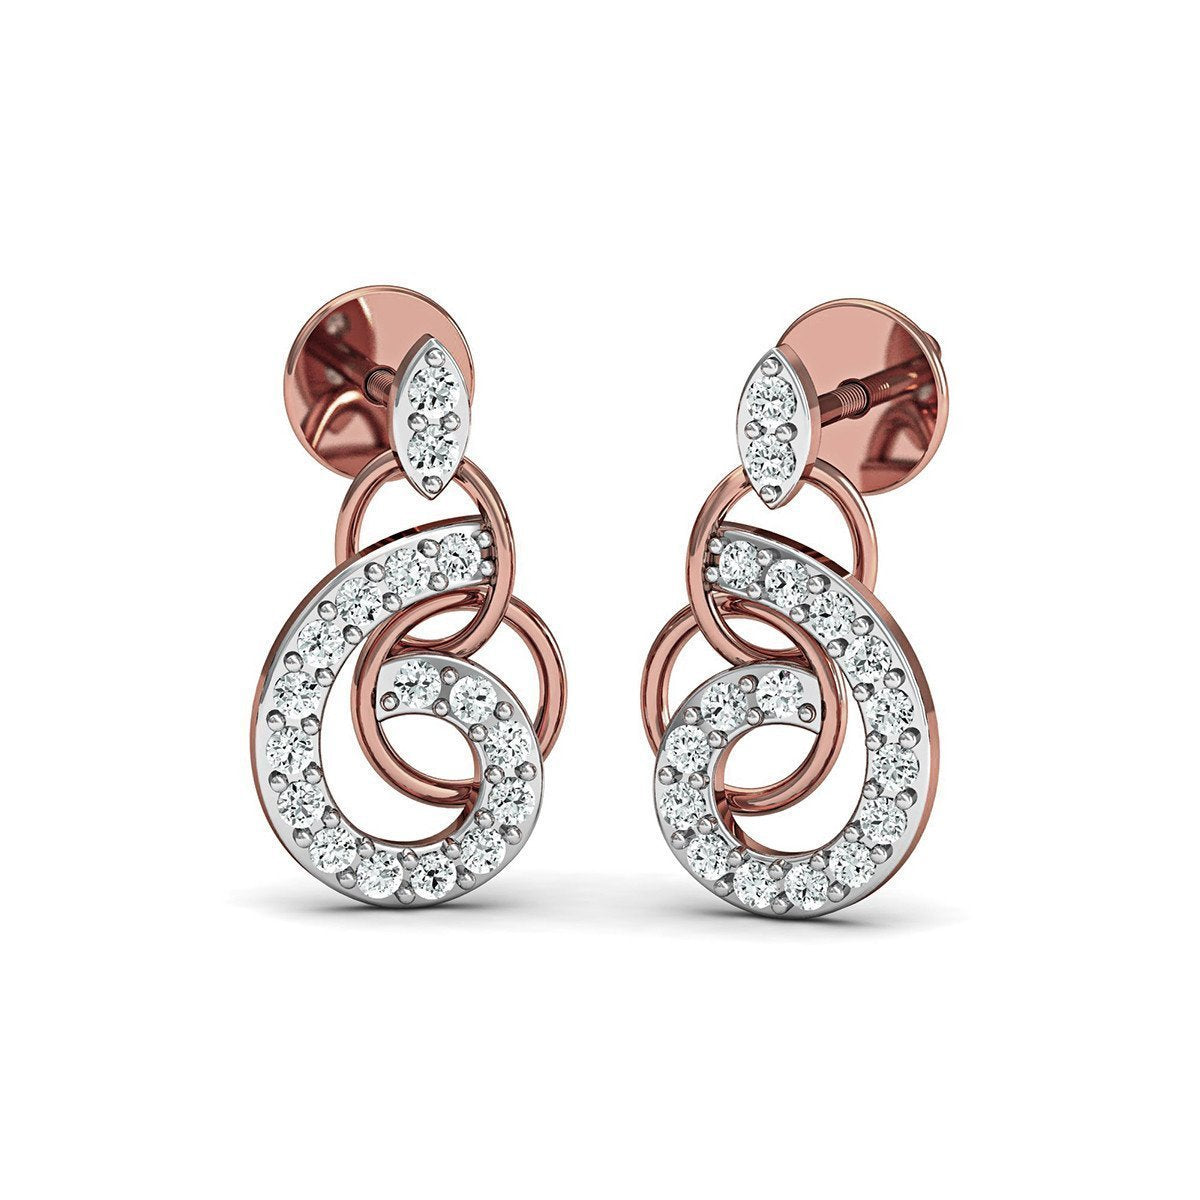 10kt Rose Gold and Diamond Pave Earrings-Earrings-Diamoire Jewels-JewelStreet